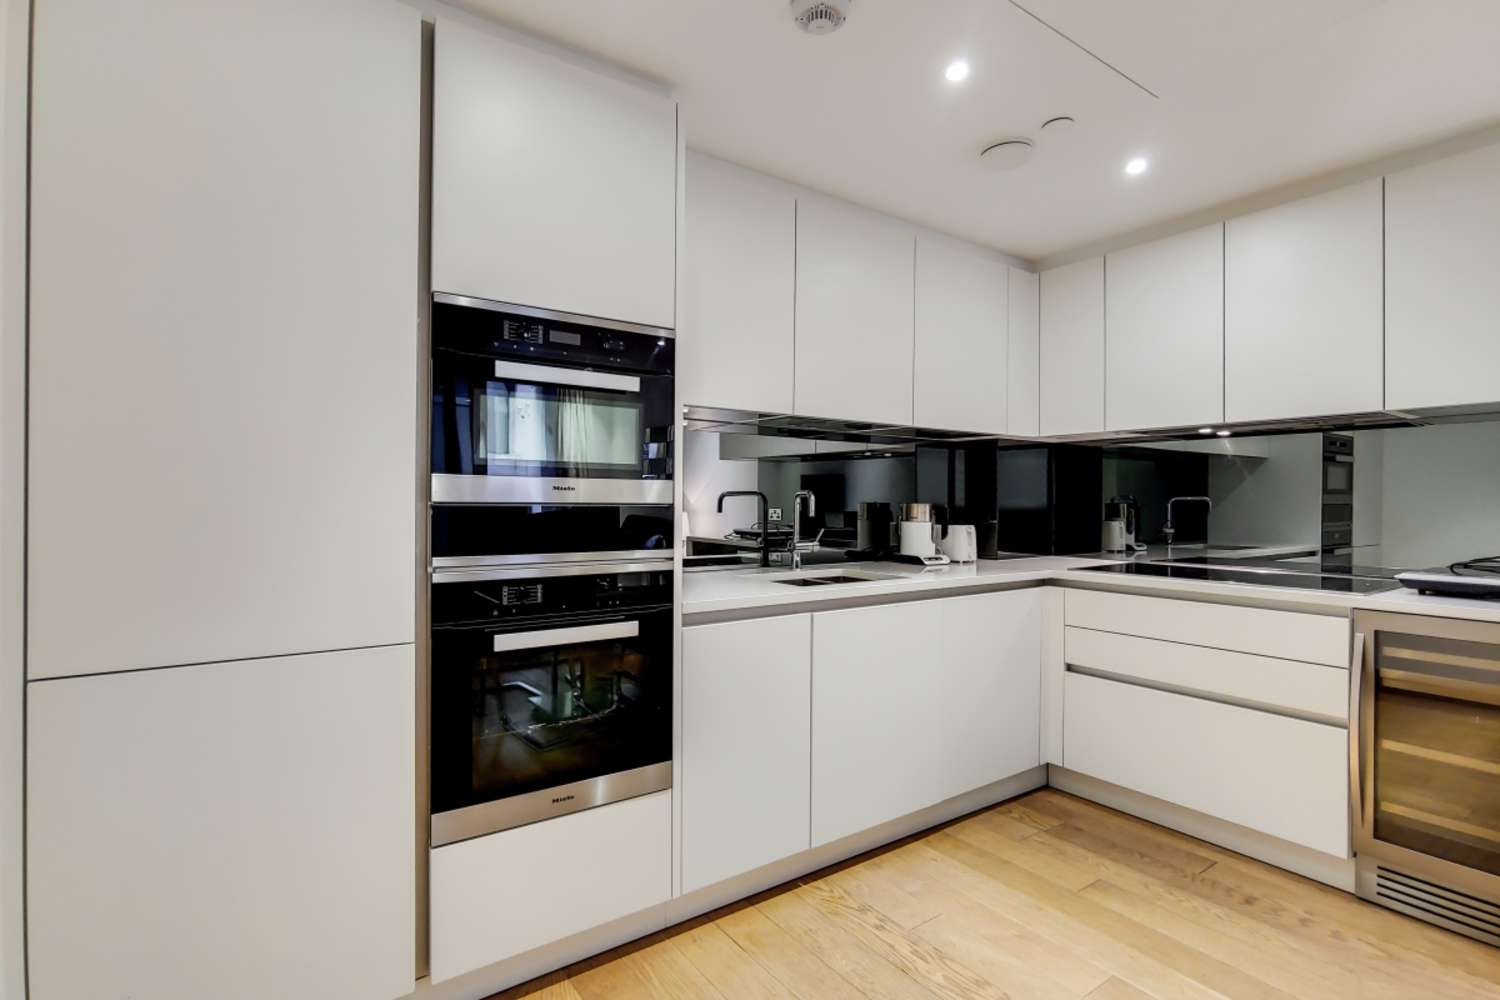 Apartment London, SW1P - The Courthouse,70 Horseferry Road, London, SW1P - 03